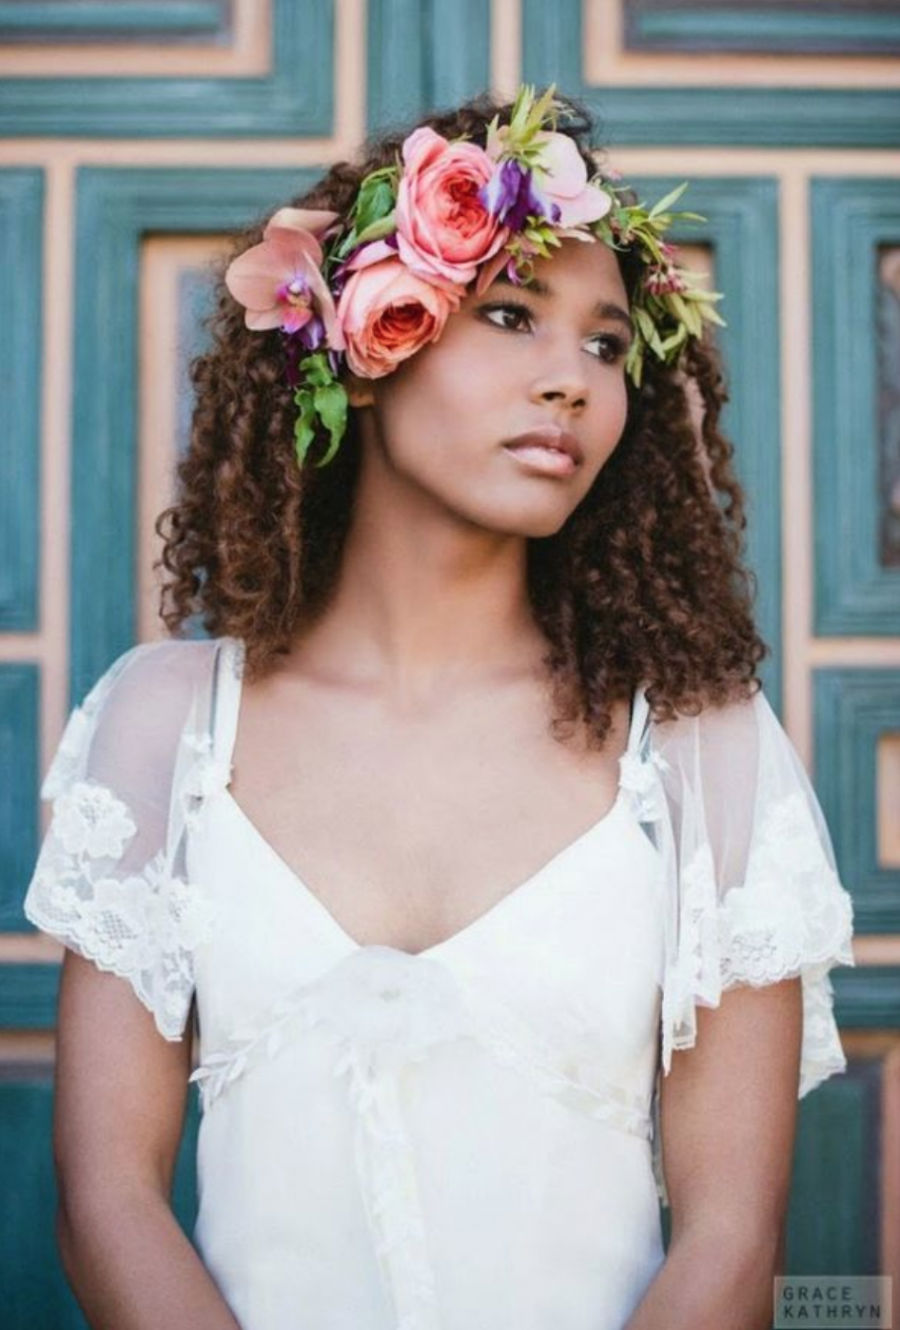 Beyond Baby's Breath: 15 Ethereal Boho Bridal Hairstyles